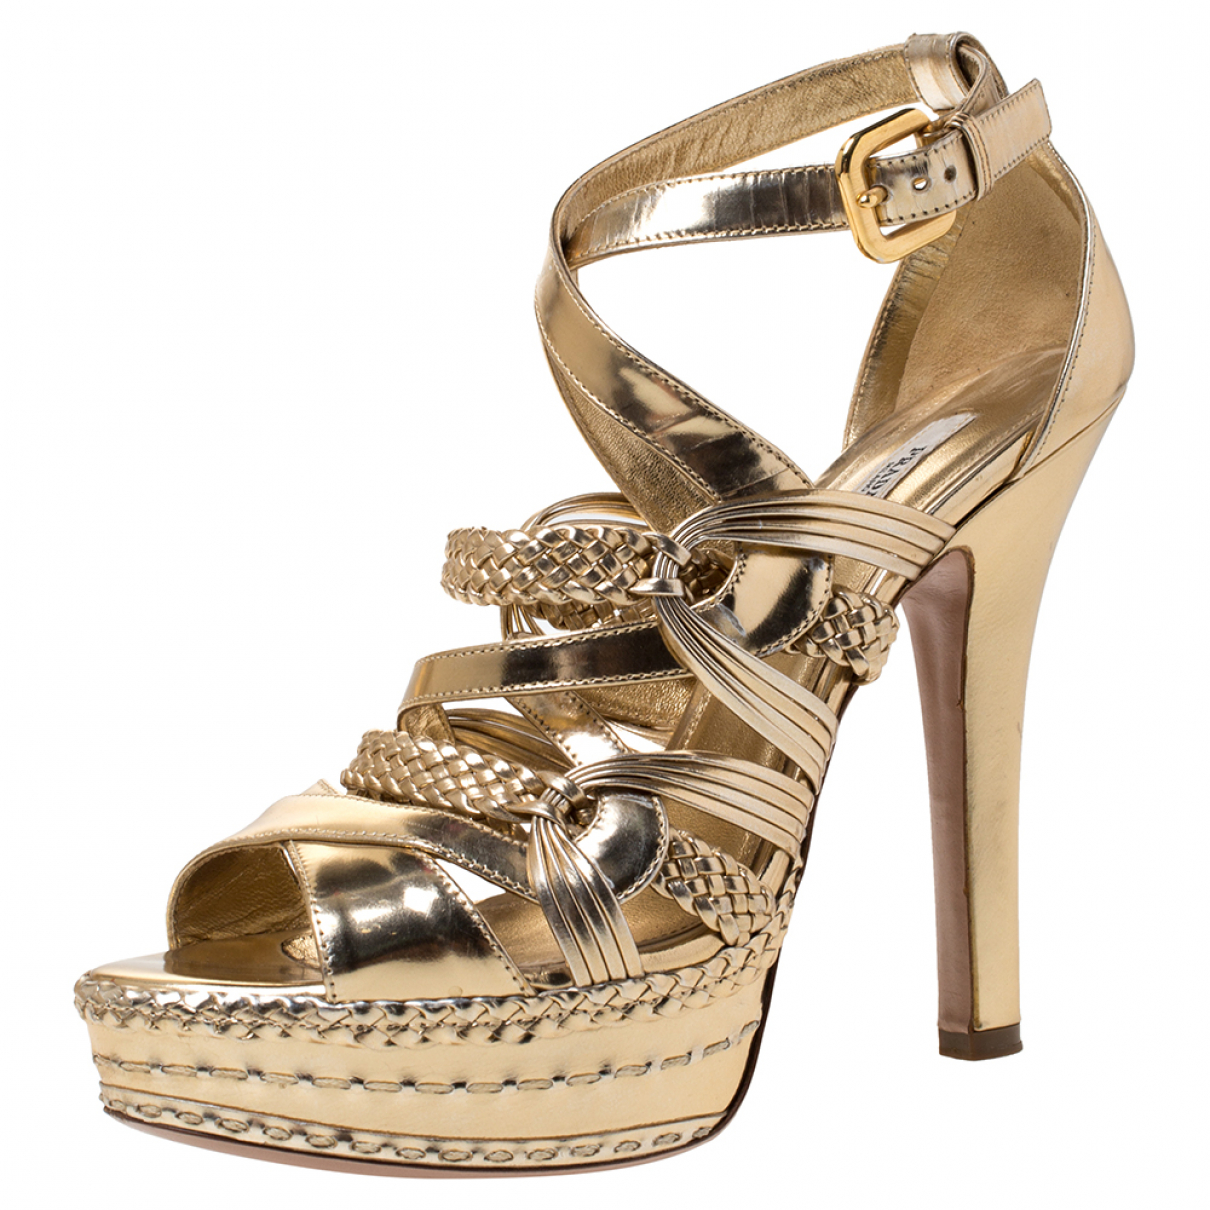 Prada \N Gold Leather Sandals for Women 9 US